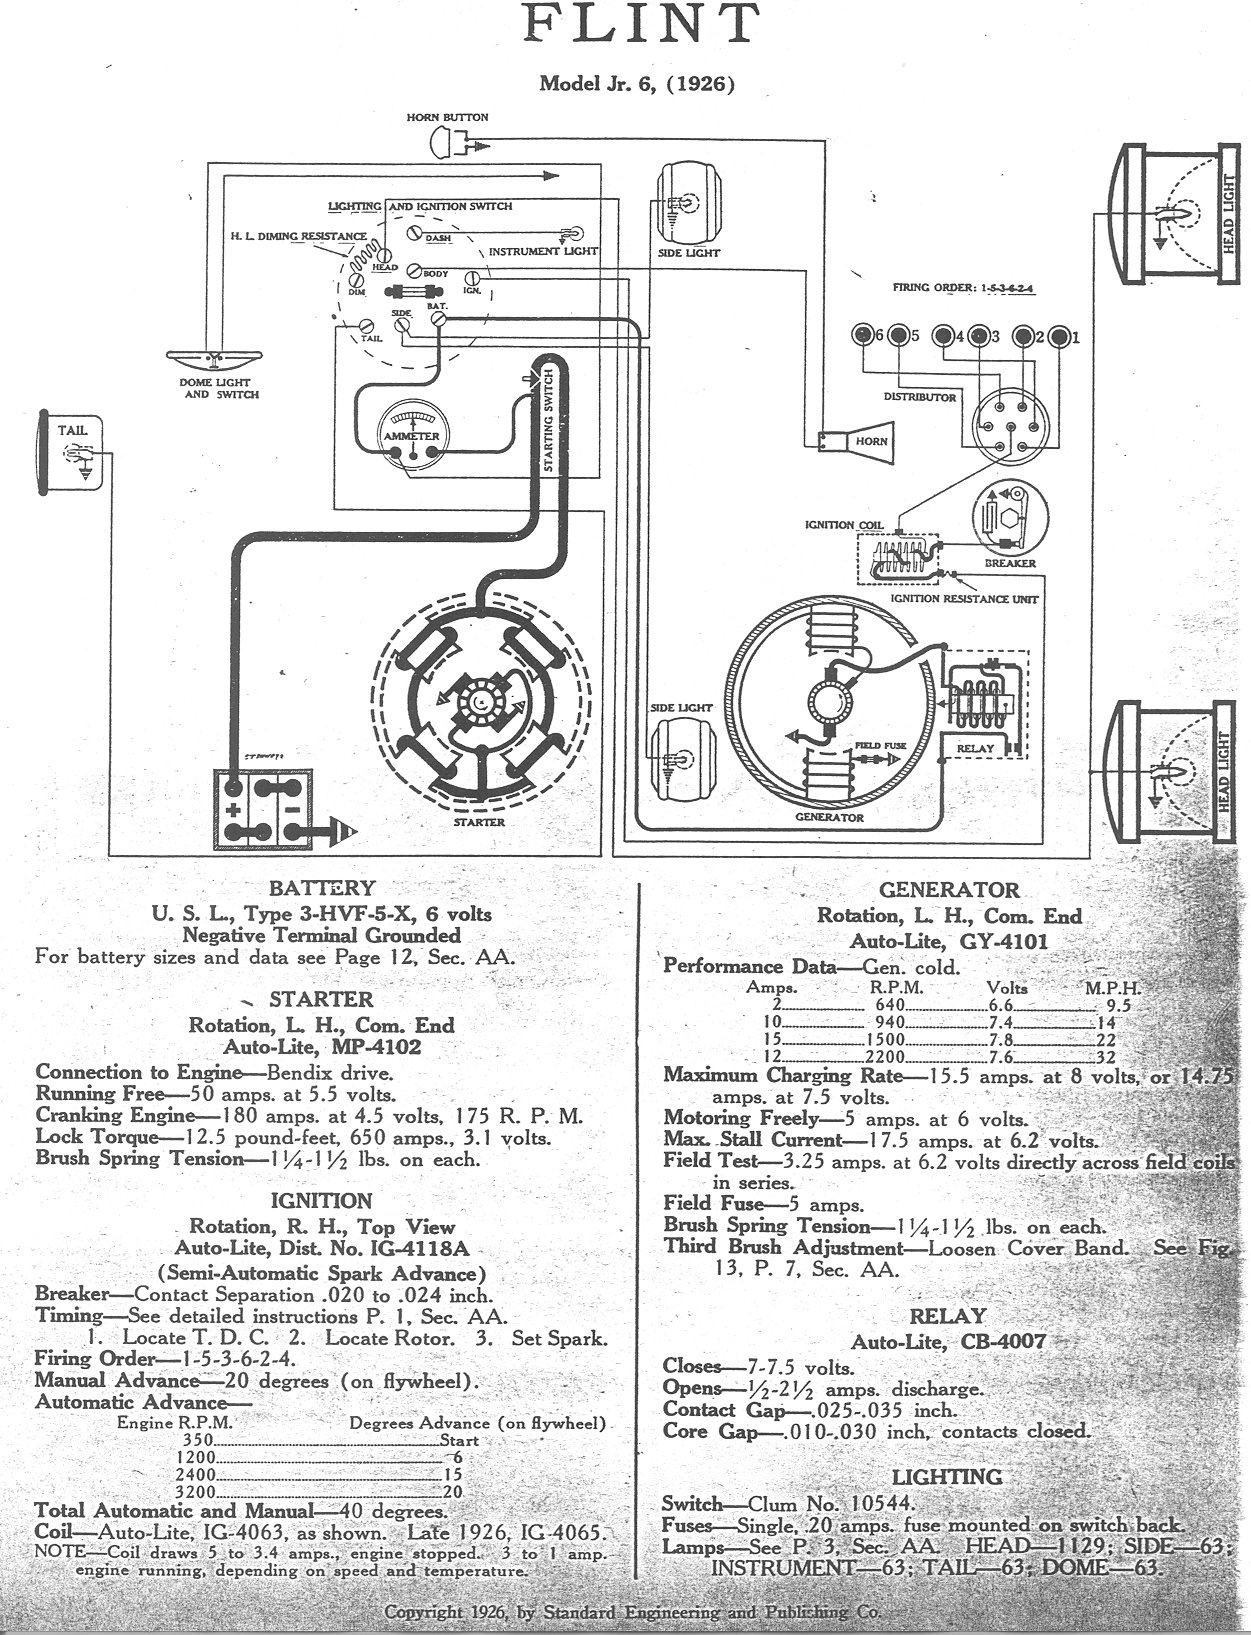 1931 ford wiring diagram 2007 chevy equinox engine 1929 electrical free image for